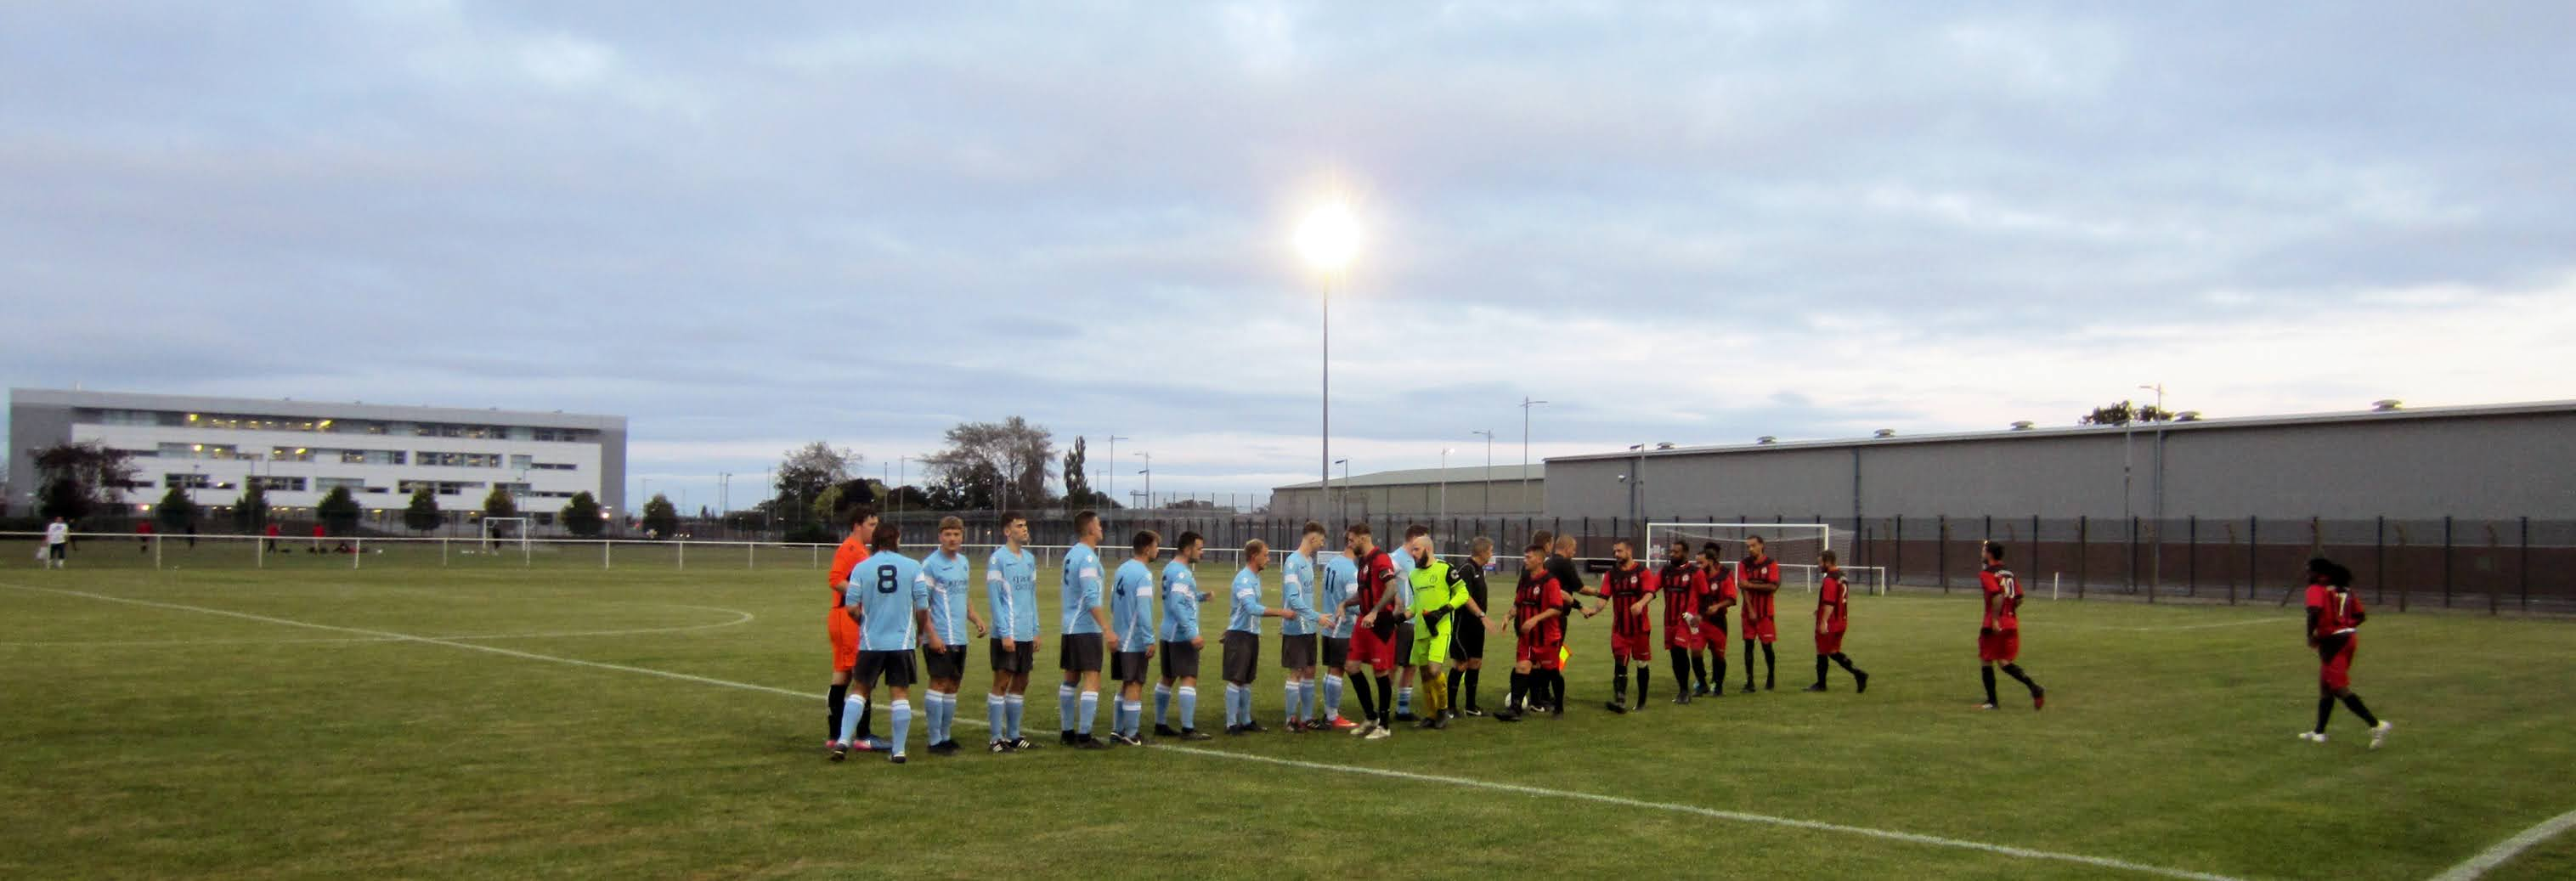 AFC Aldermaston and Woodley United players shake hands before the game